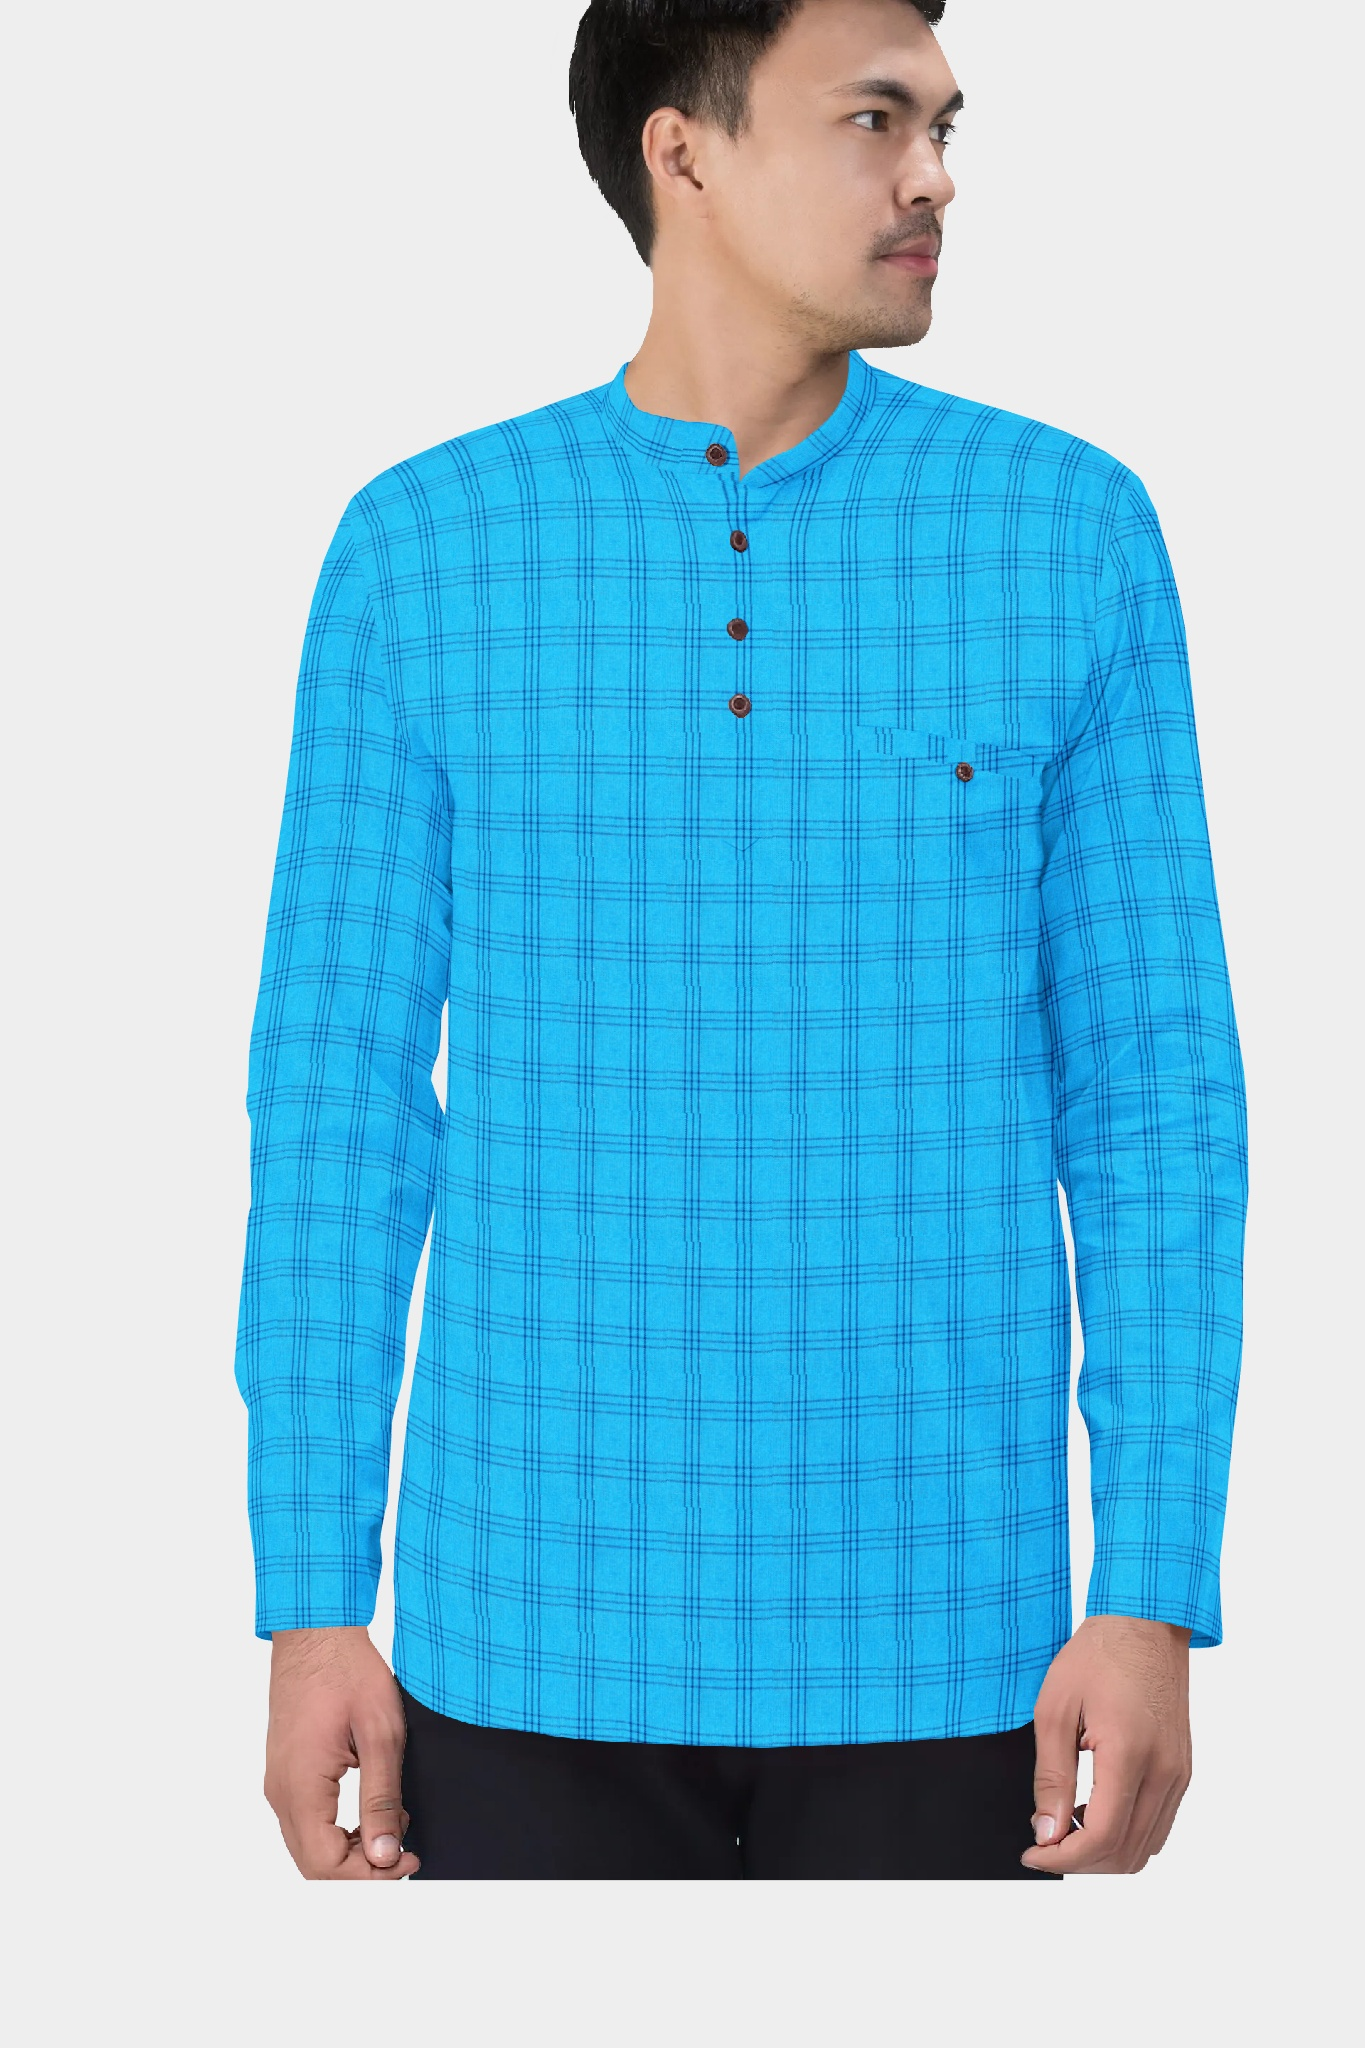 /home/customer/www/fabartcraft.com/public_html/uploadshttps://www.shopolics.com/uploads/images/medium/Sky-Blue-Blue-Cotton-Short-Kurta-35457.jpg